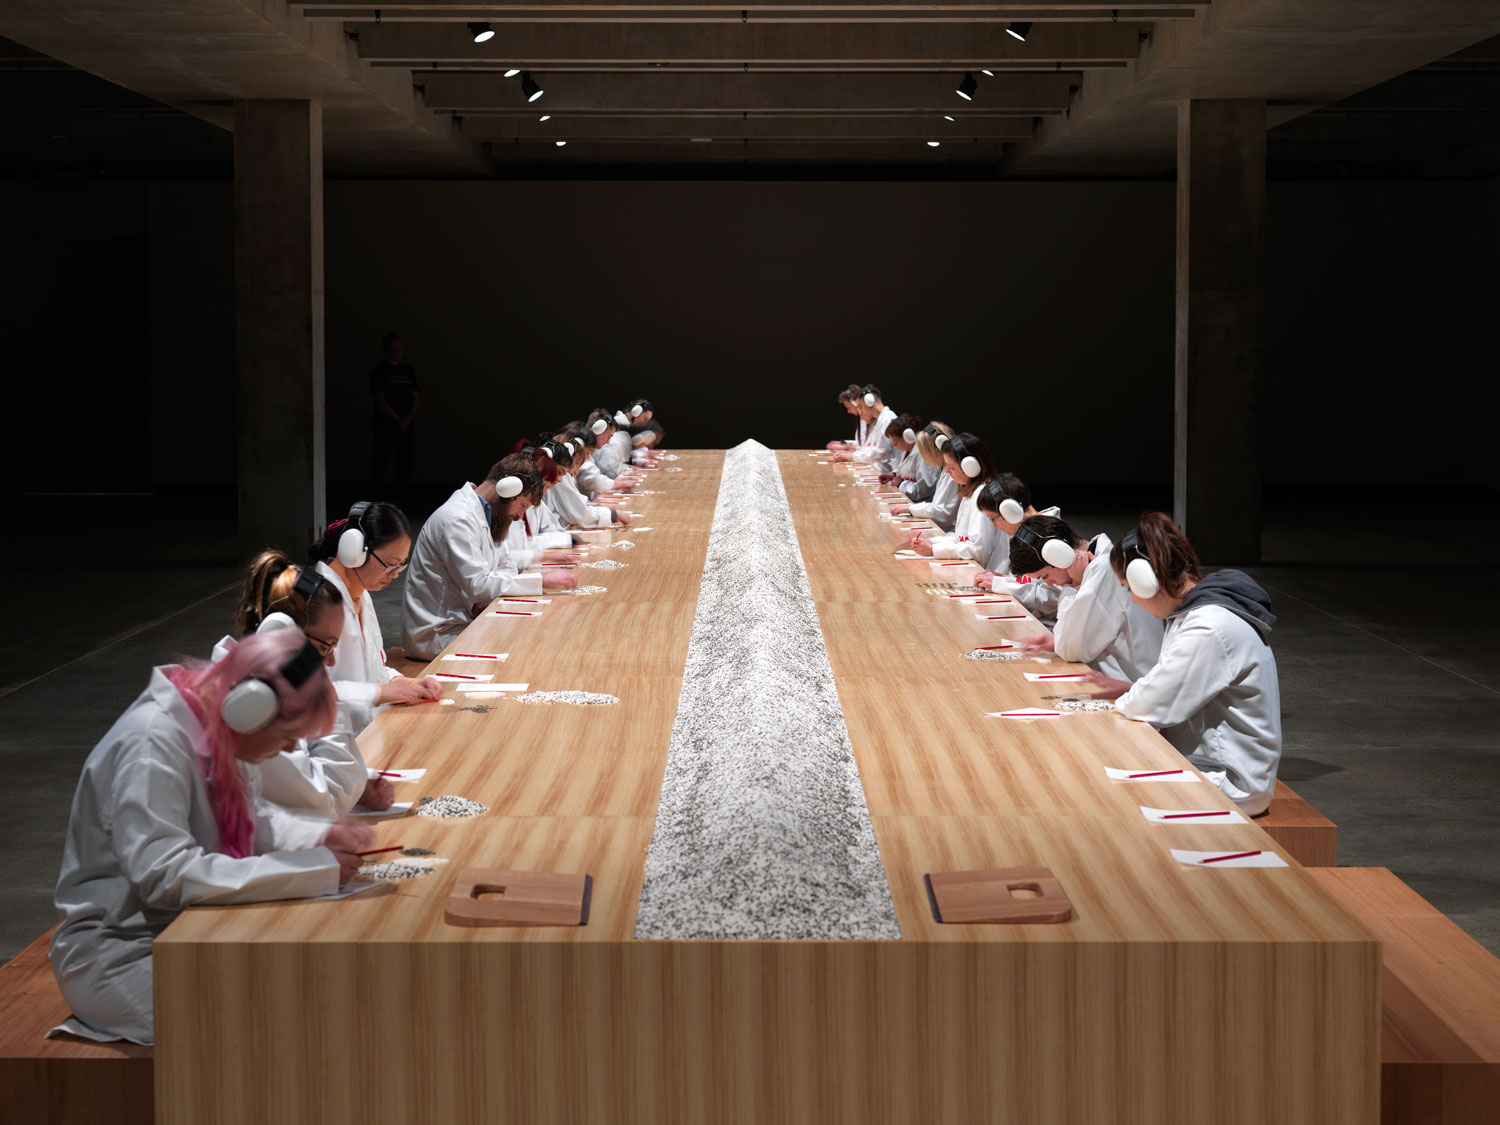 Private Archaeology by Marina Abramovic | Yellowtrace